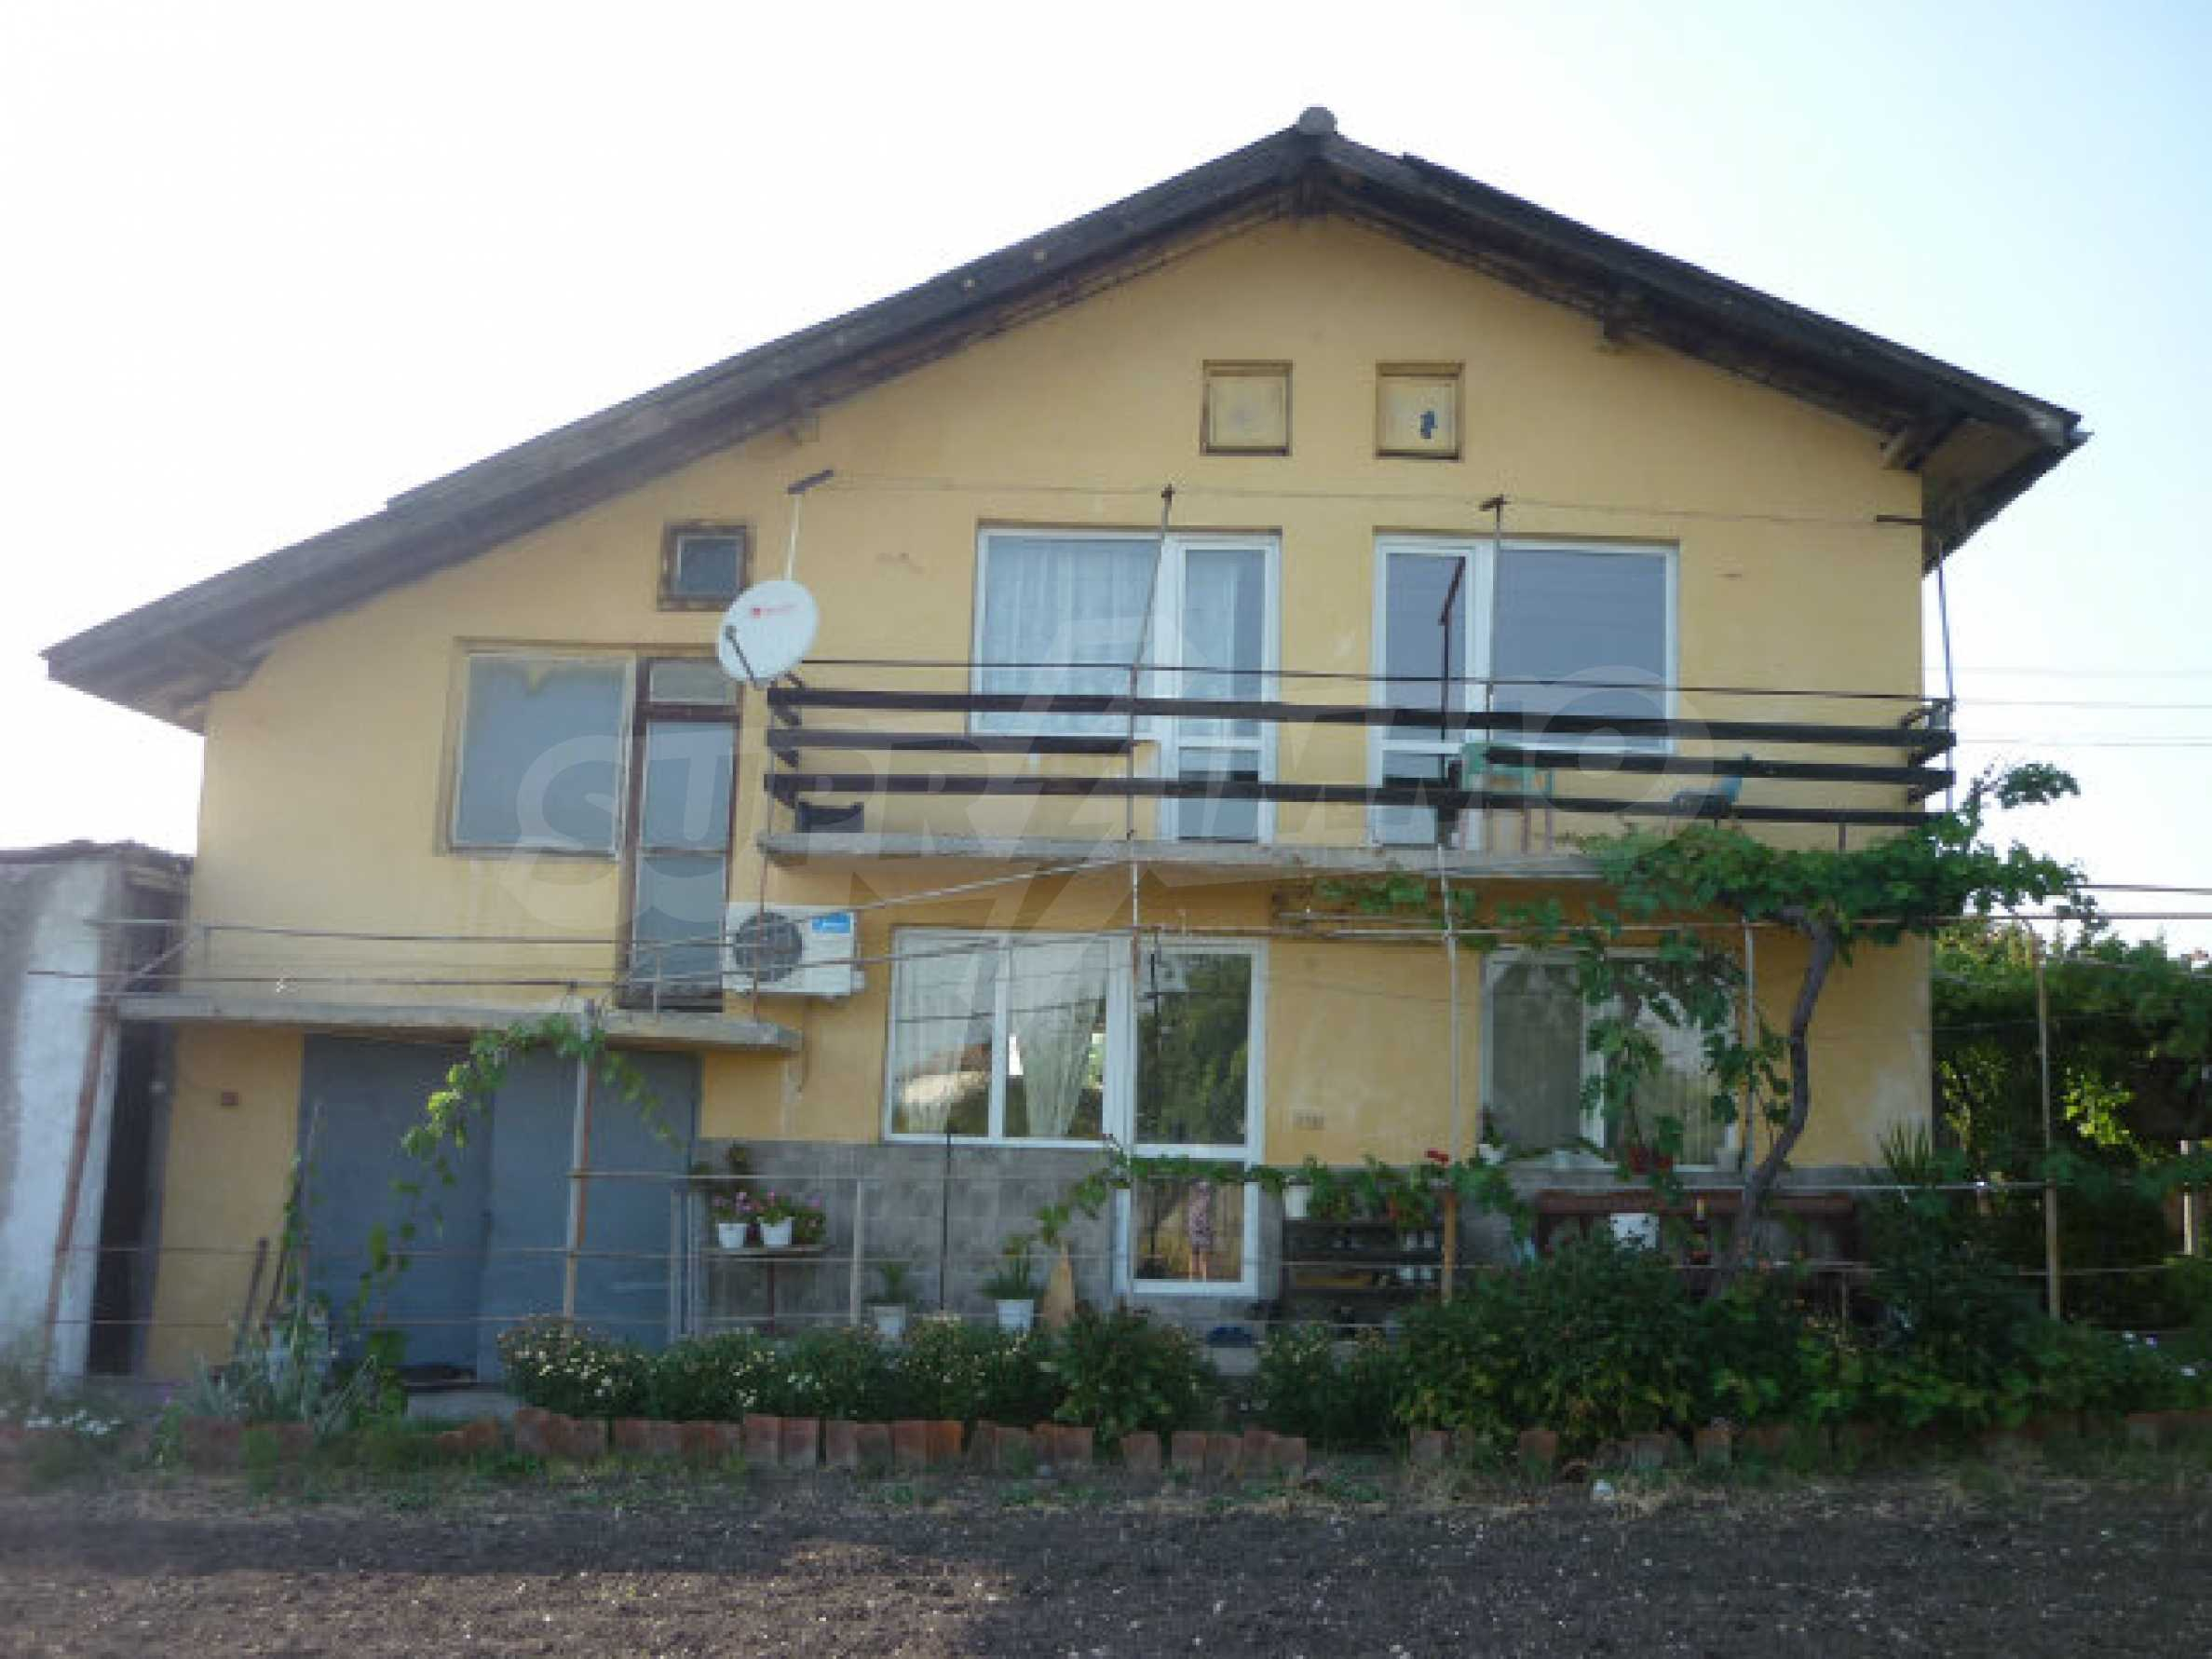 Renovated house in small village on the Maritsa river, near mineral springs